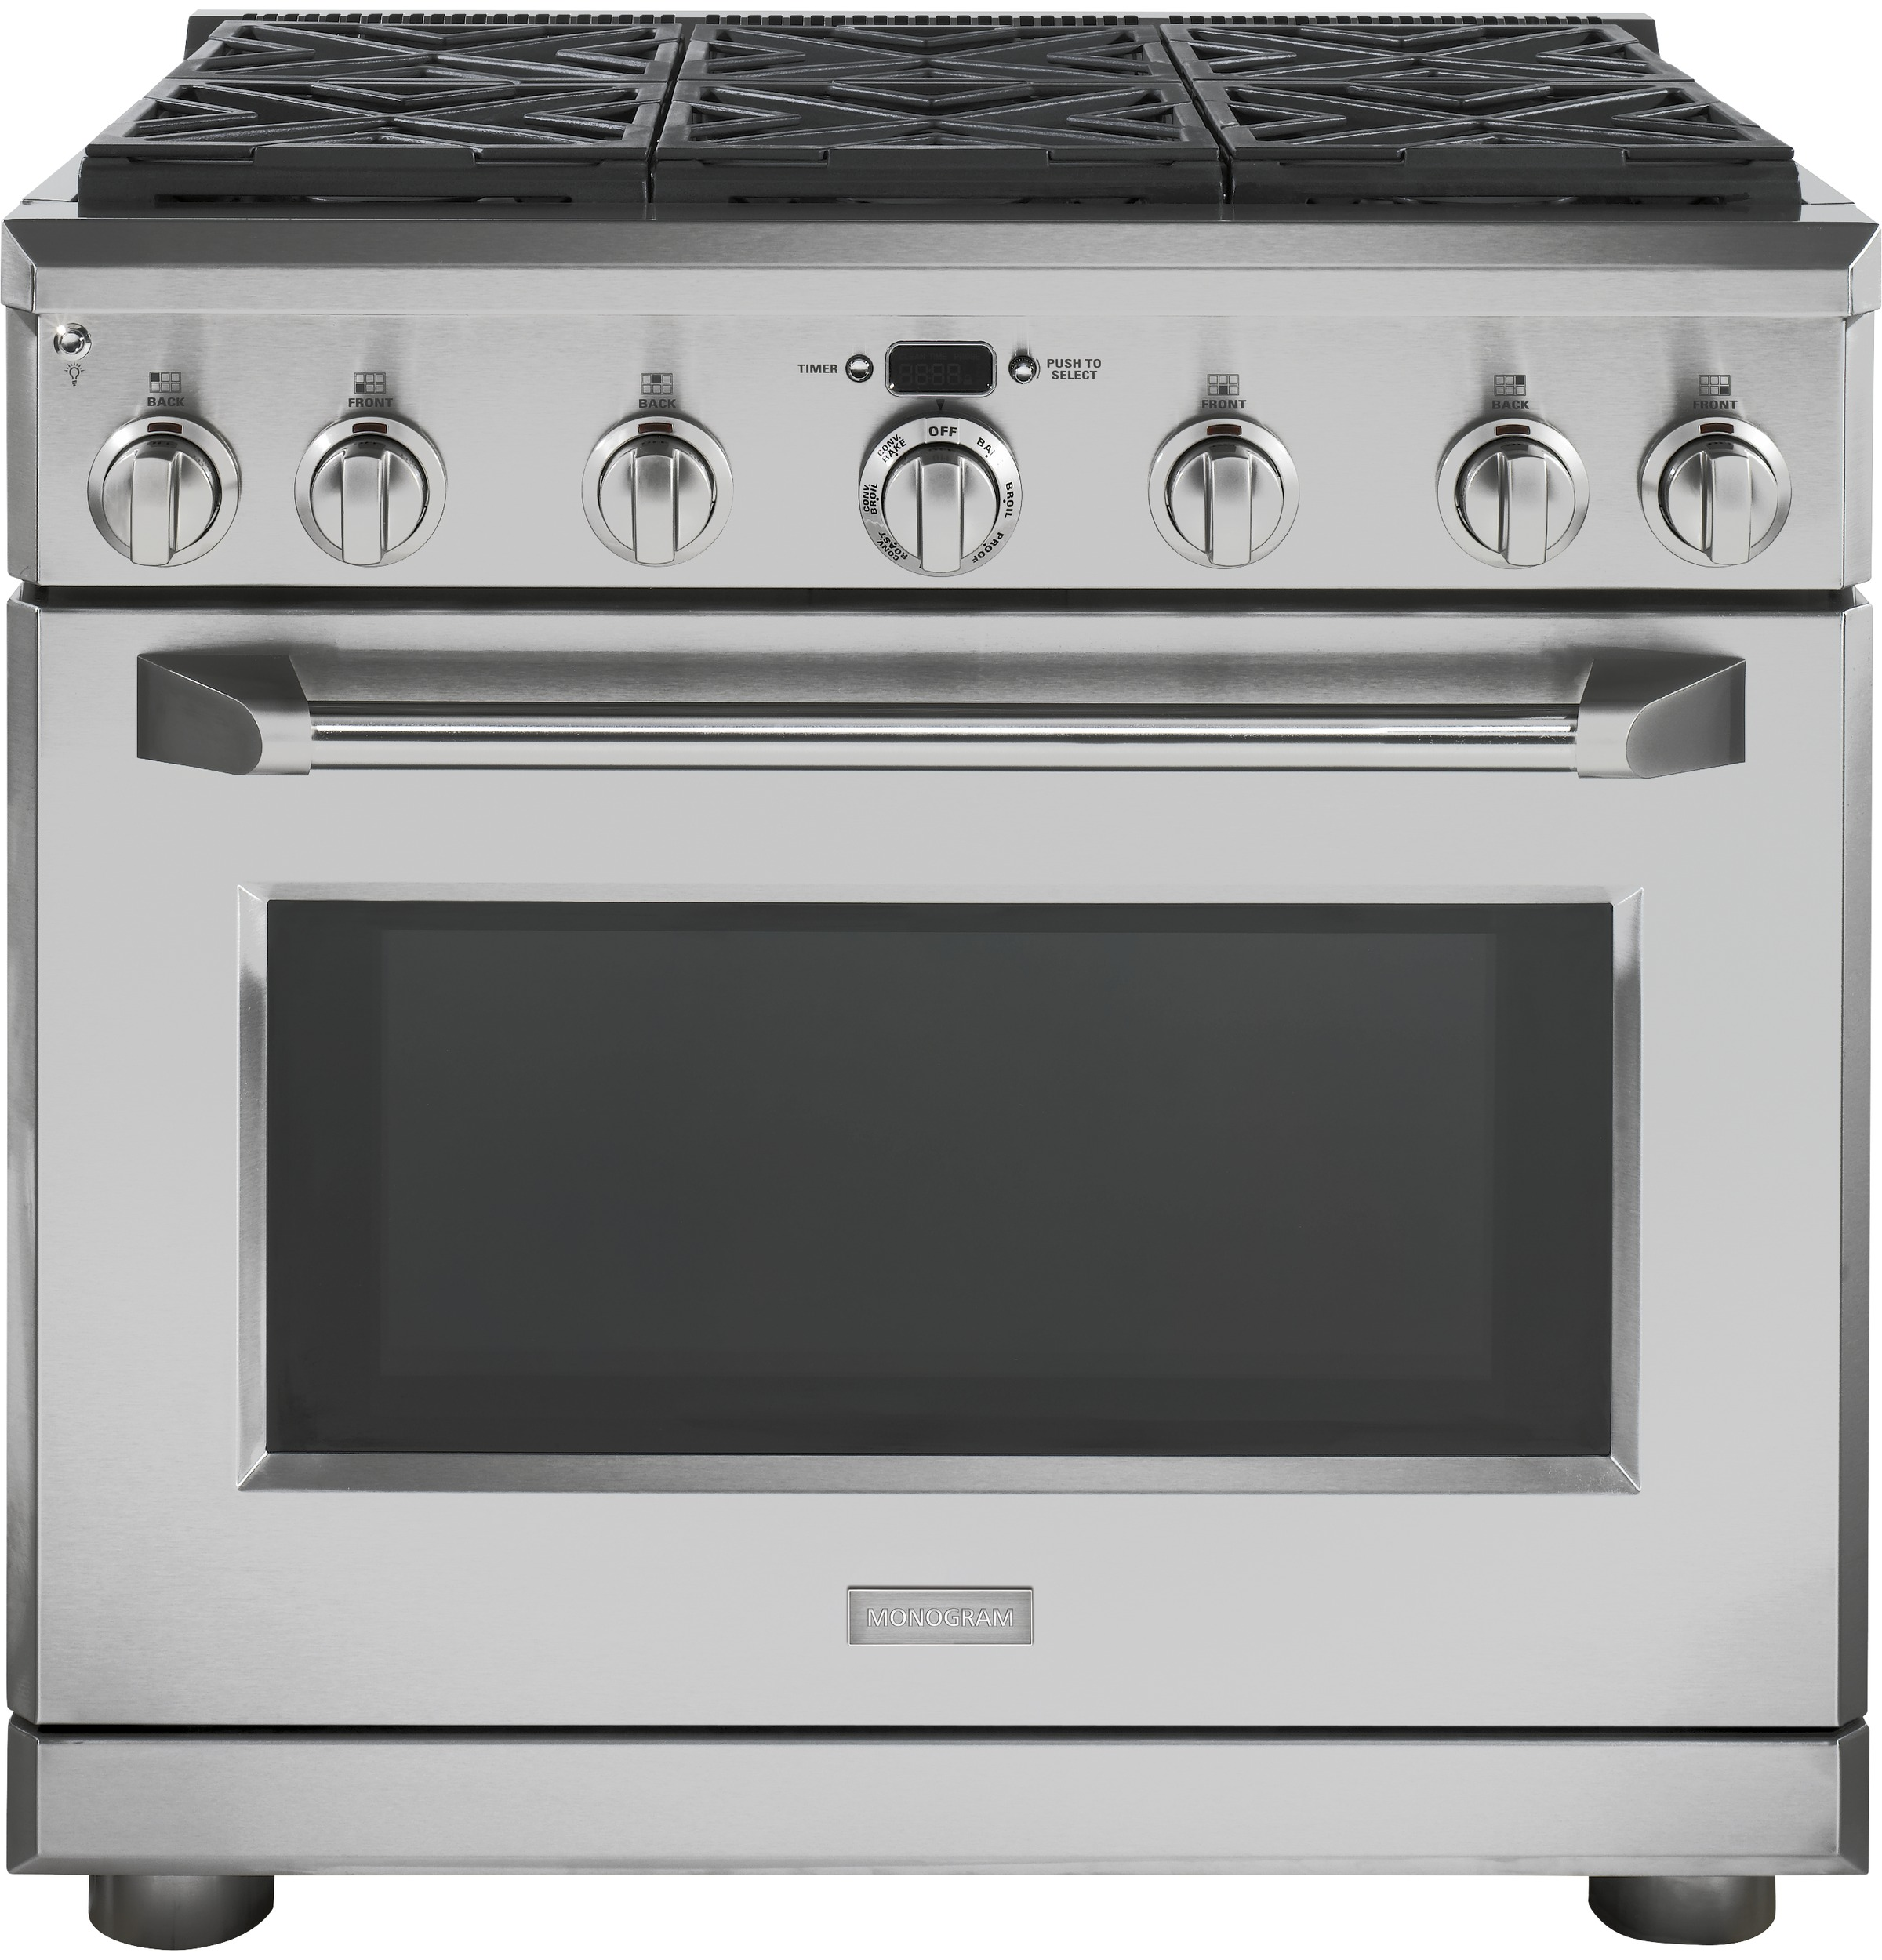 "Monogram Monogram 36"" All Gas Professional Range with 6 Burners (Natural Gas)"